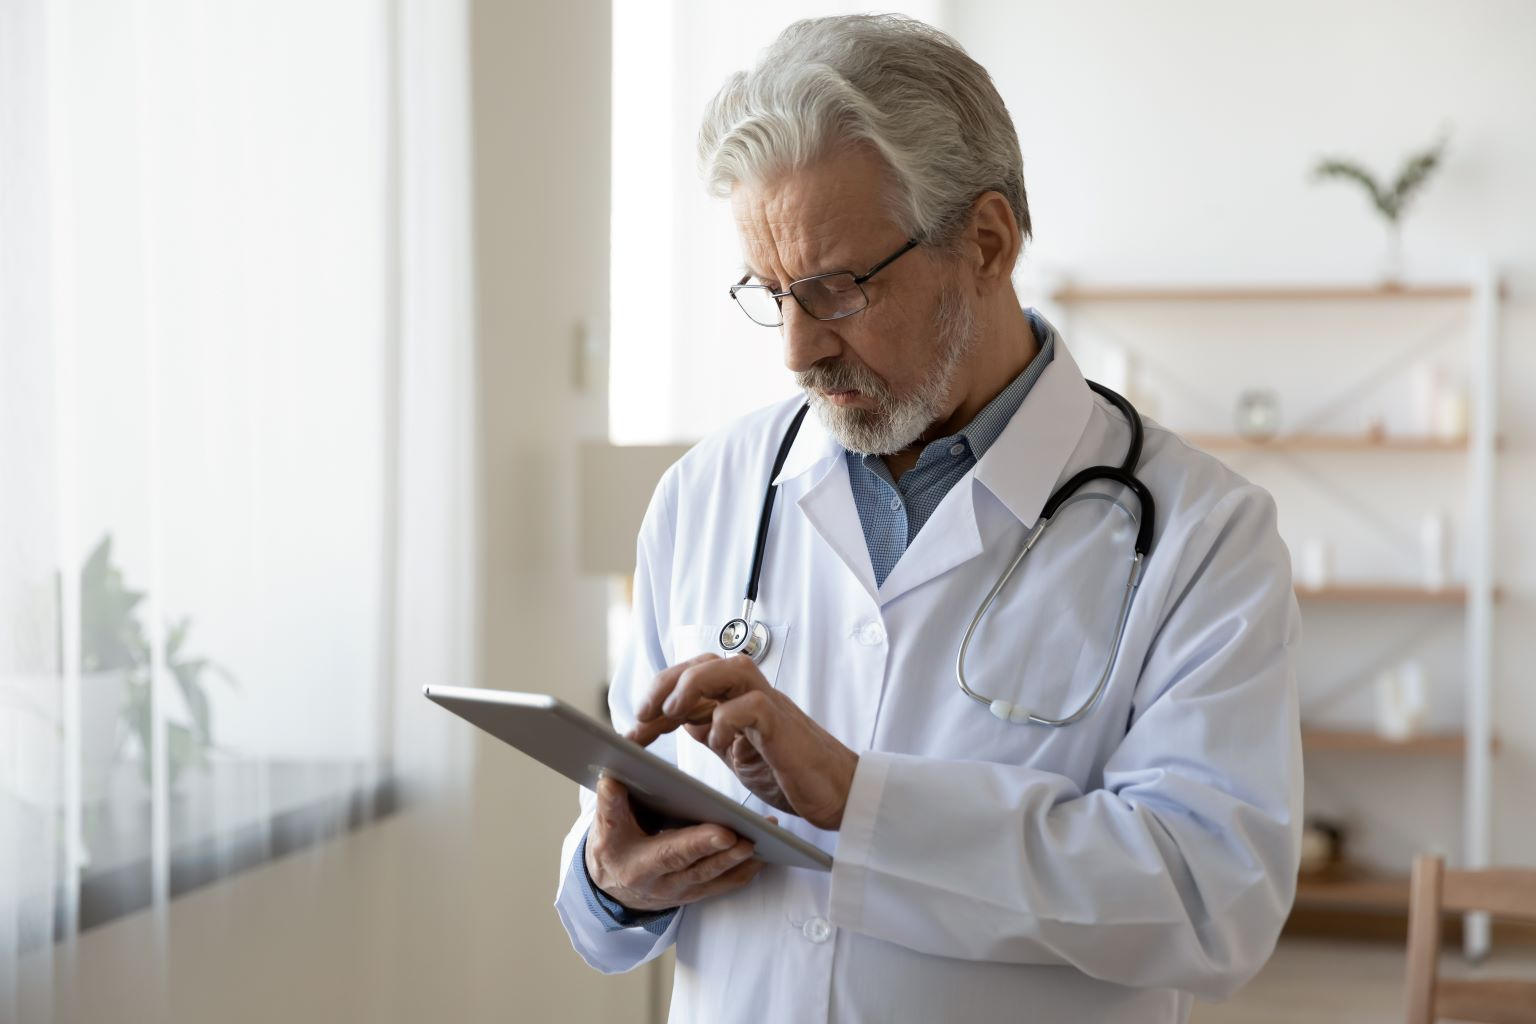 Redefining the virtual meeting experience for physicians